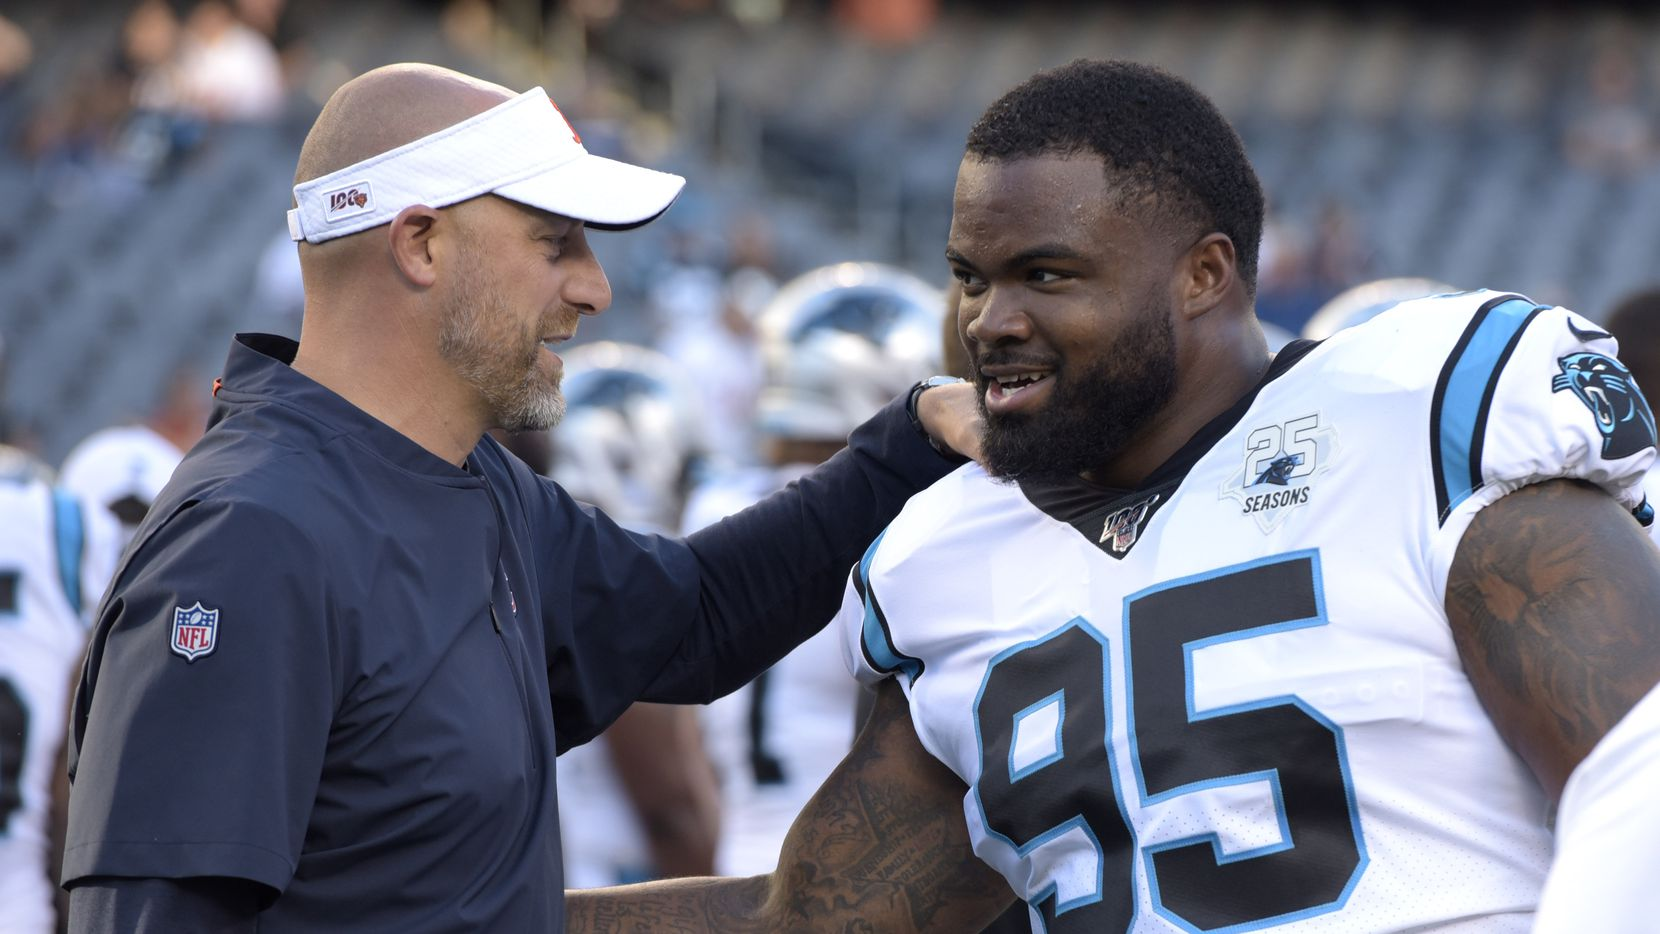 Chicago Bears head coach Matt Nagy, left, talks with Carolina Panthers' Dontari Poe before an NFL preseason football game Thursday, Aug. 8, 2019, in Chicago.